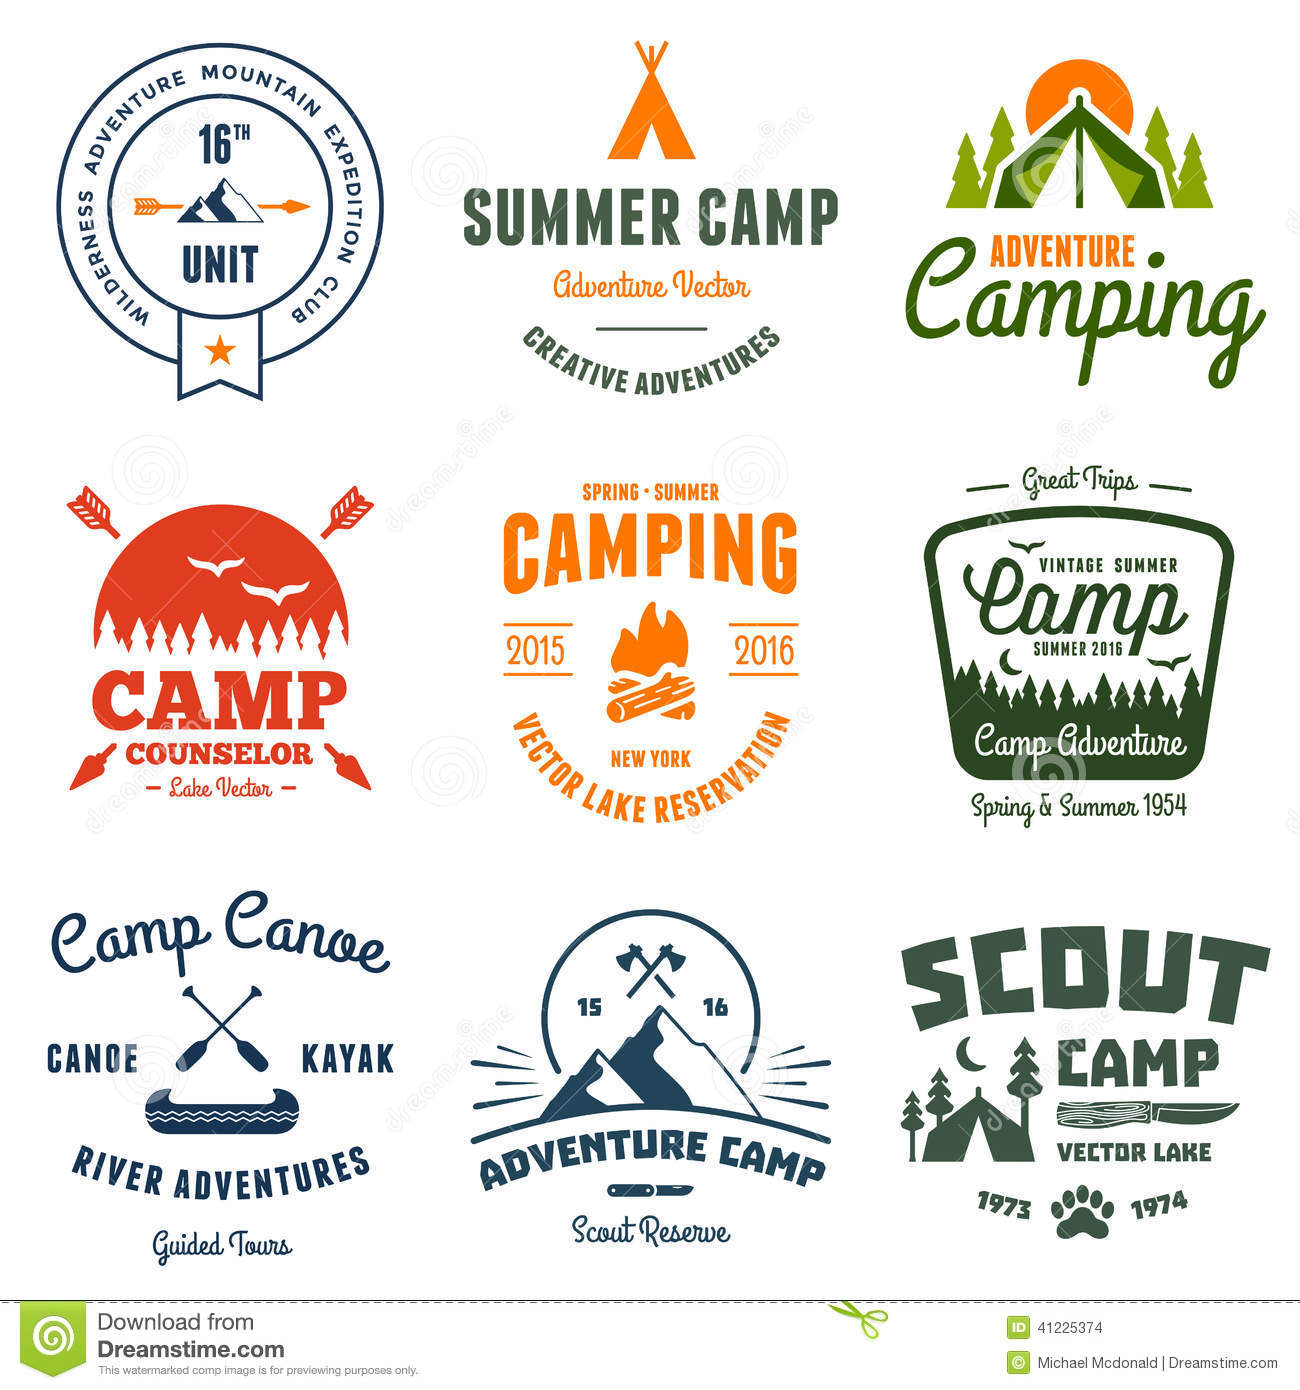 Vintage camp shirt logo clipart.